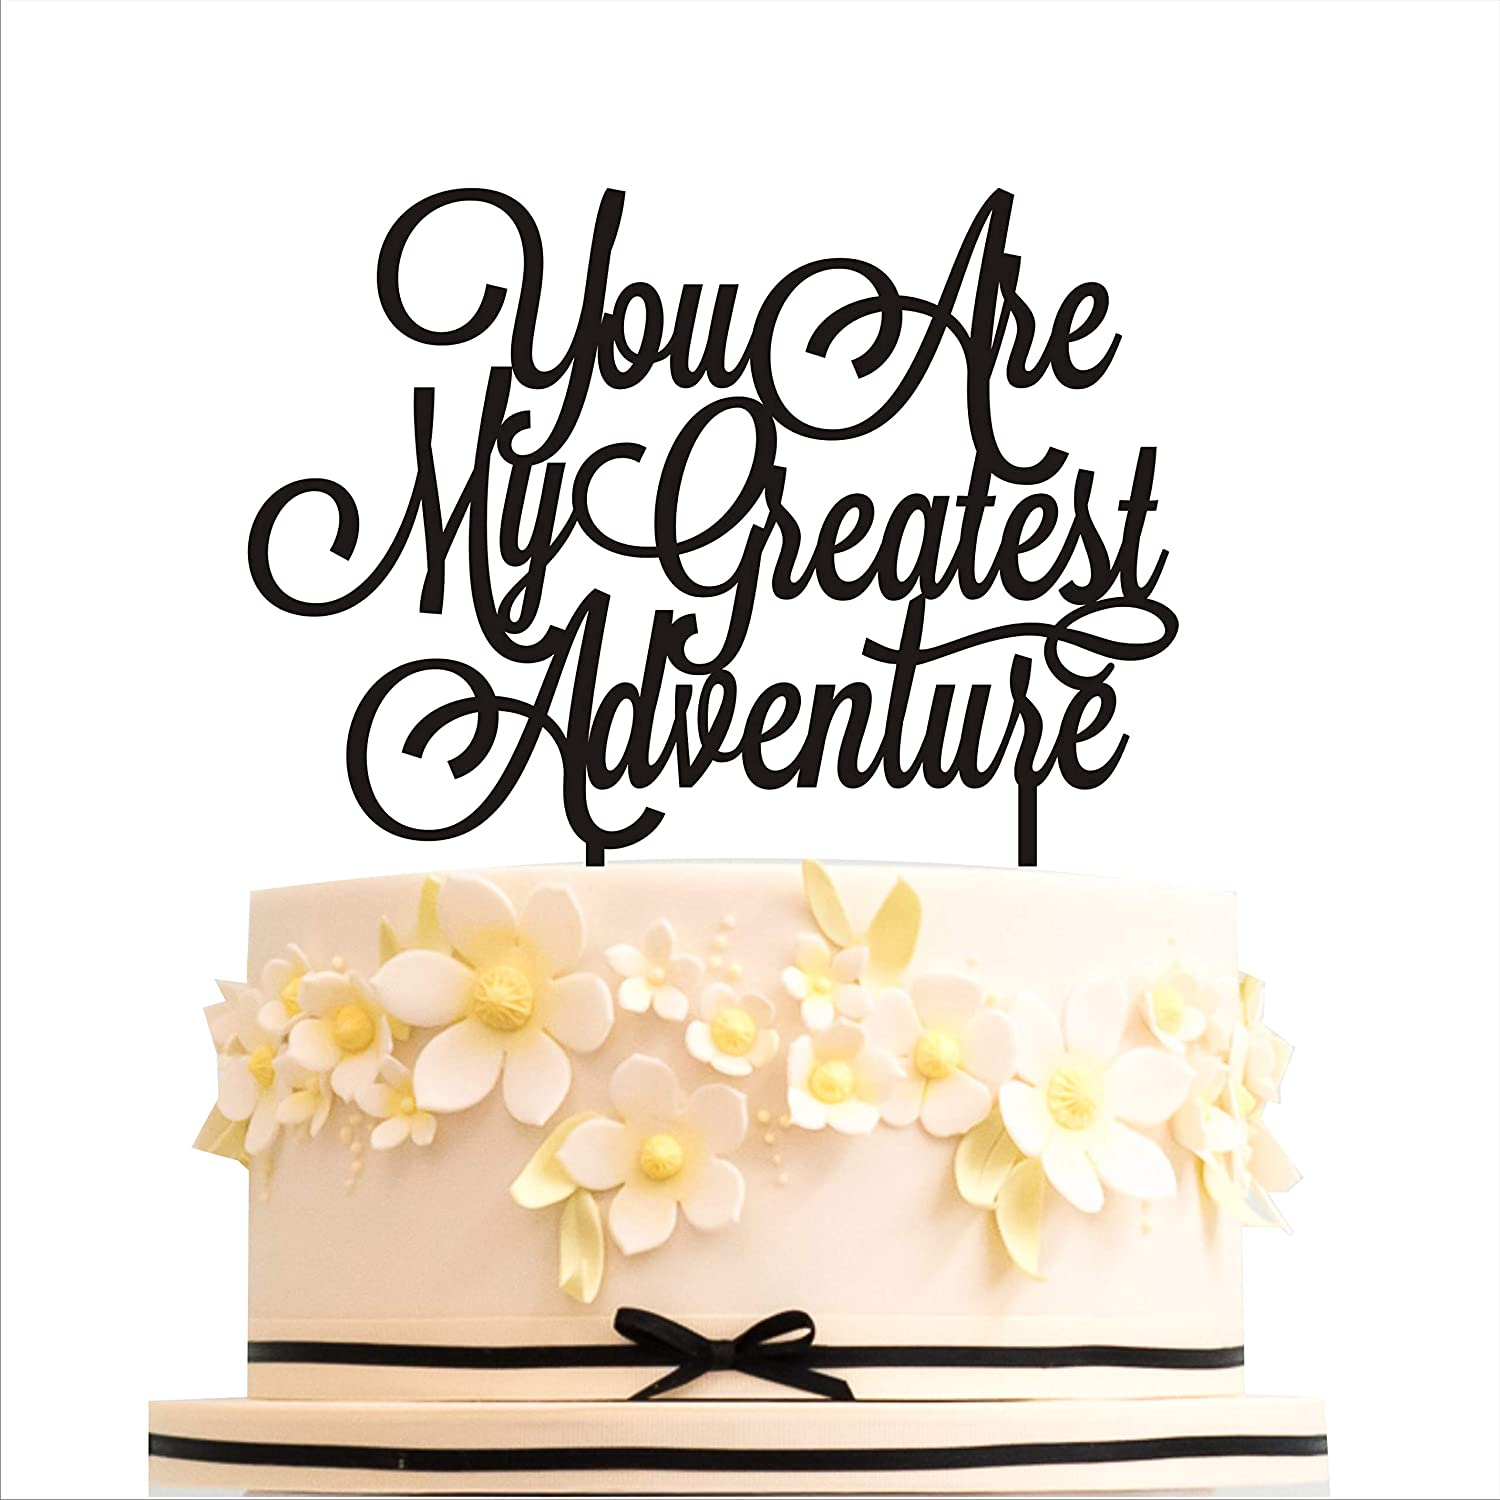 """You are my greatest adventure, Cake Topper Wedding, Cake Topper Birthday, Cake topper Anniversary, Gold Silver Black White Cake decorations (width 5"""", gold)"""